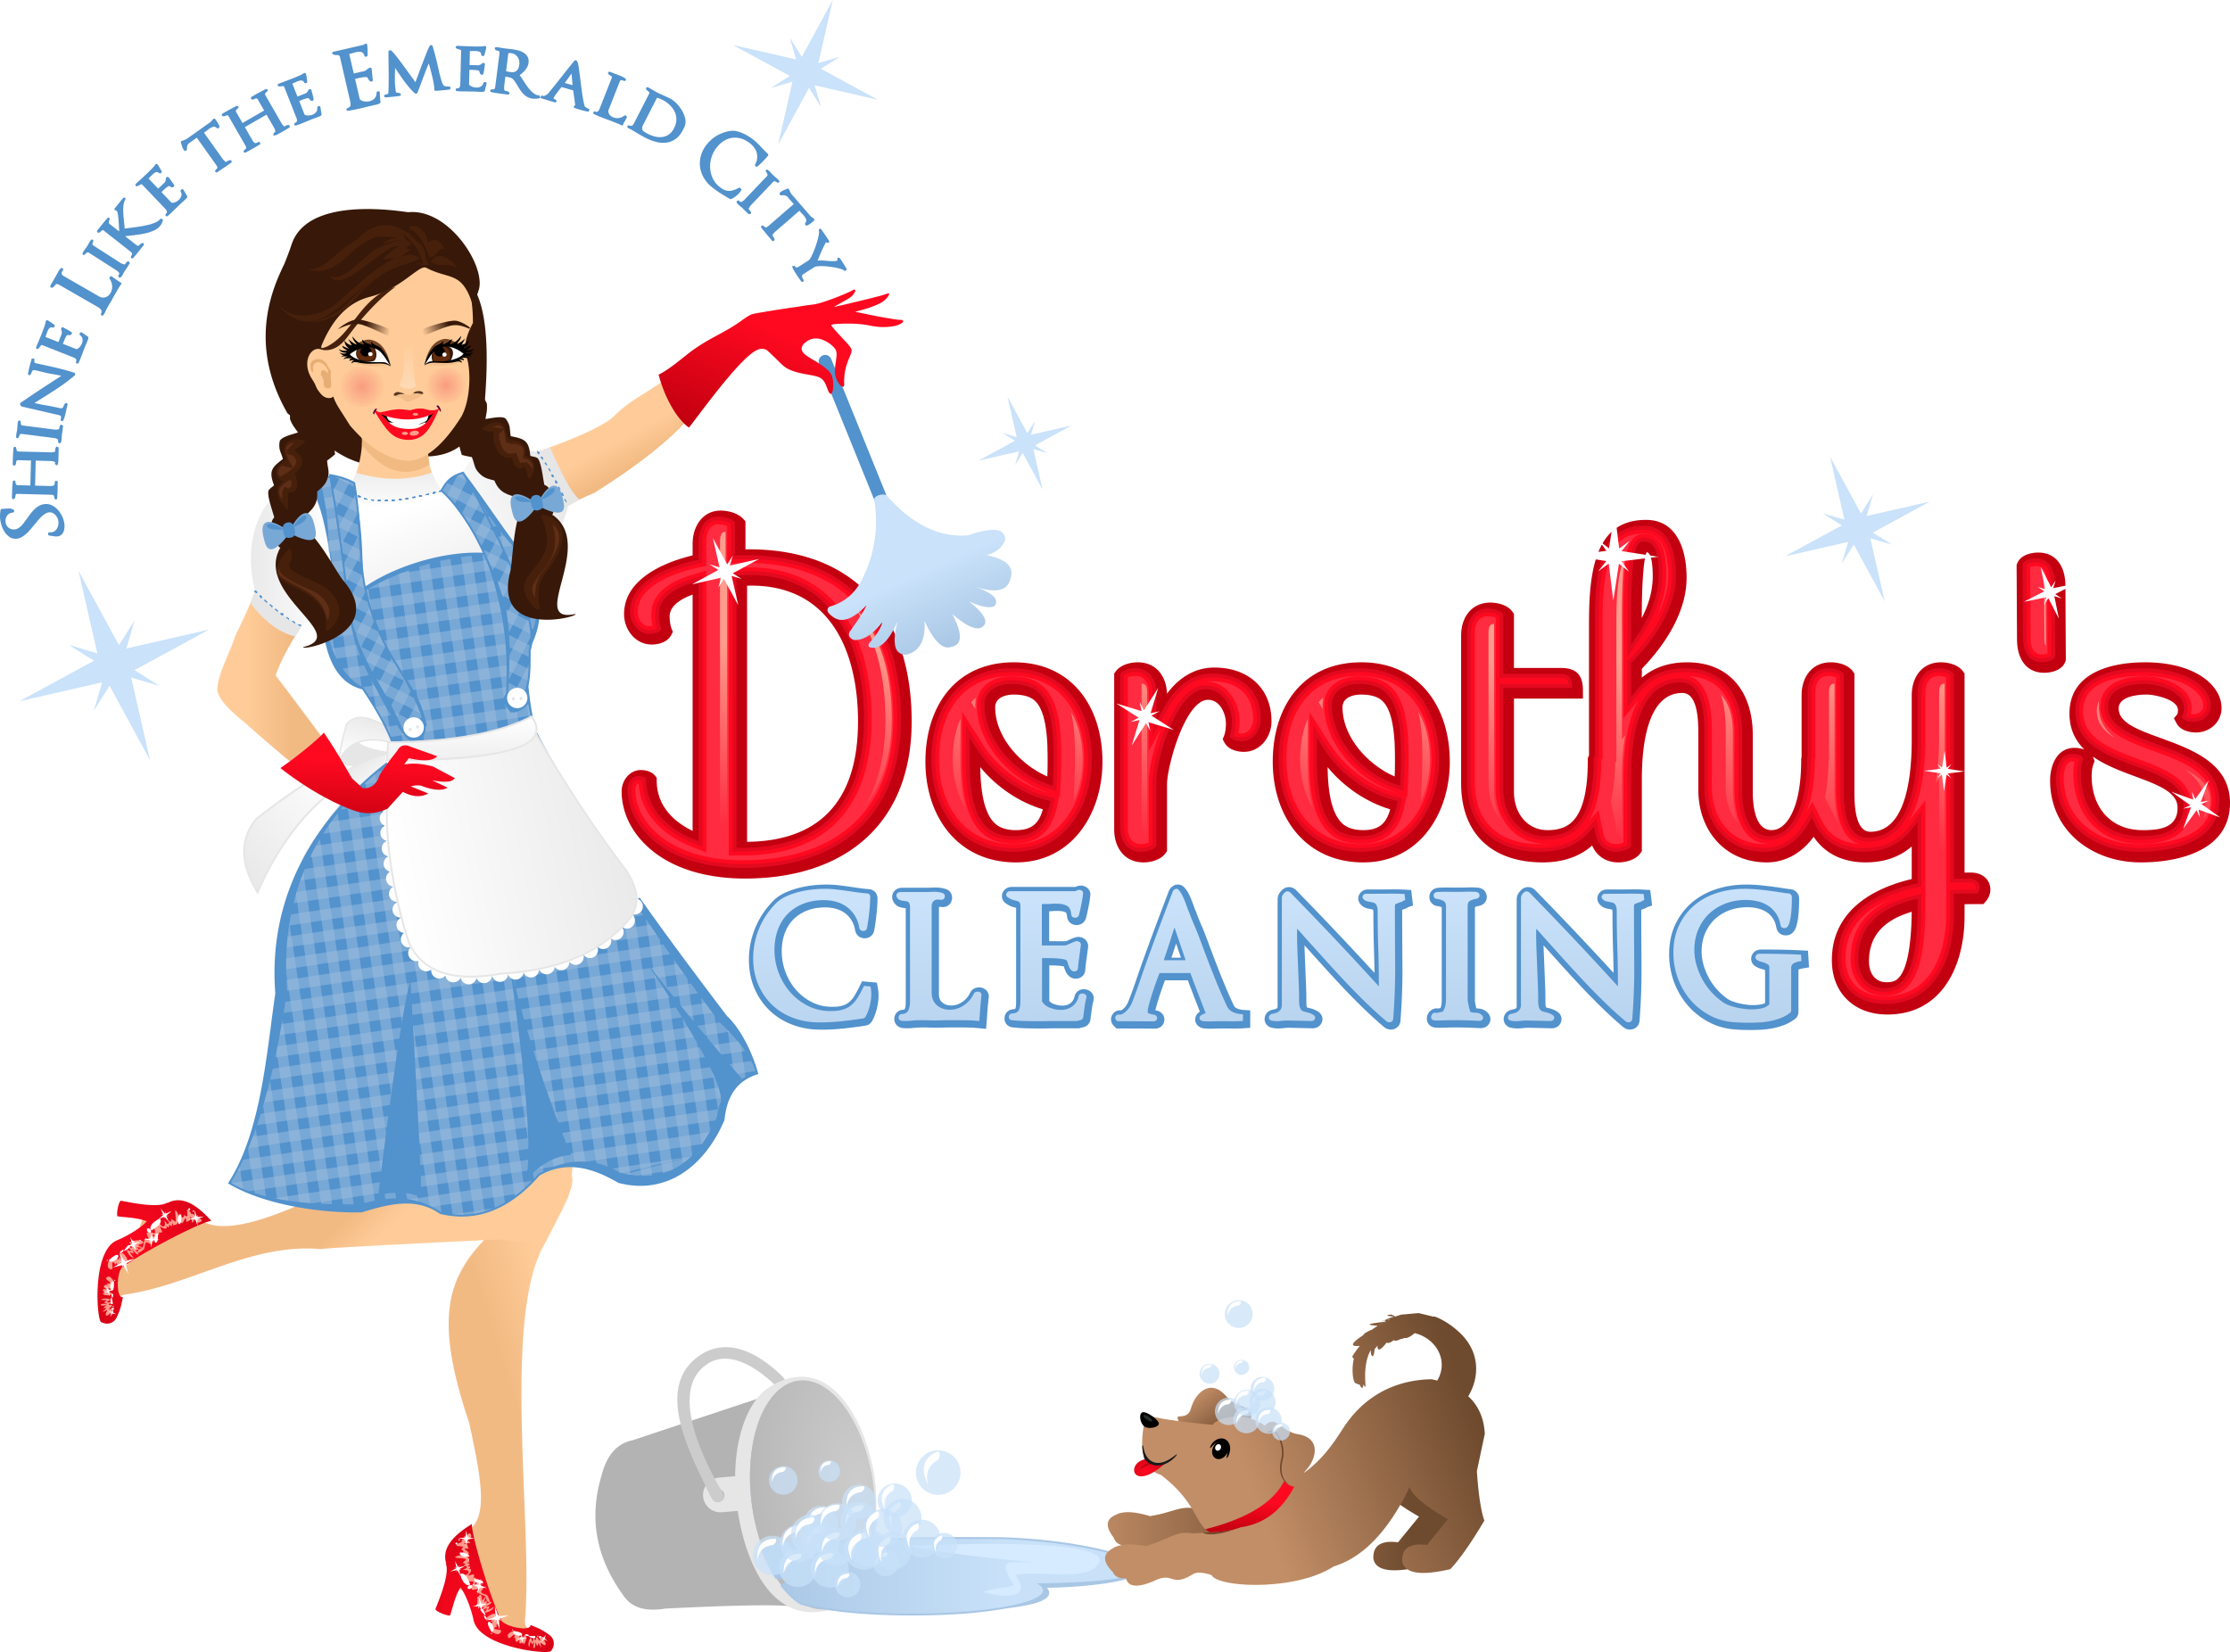 Dorothy's Cleaning